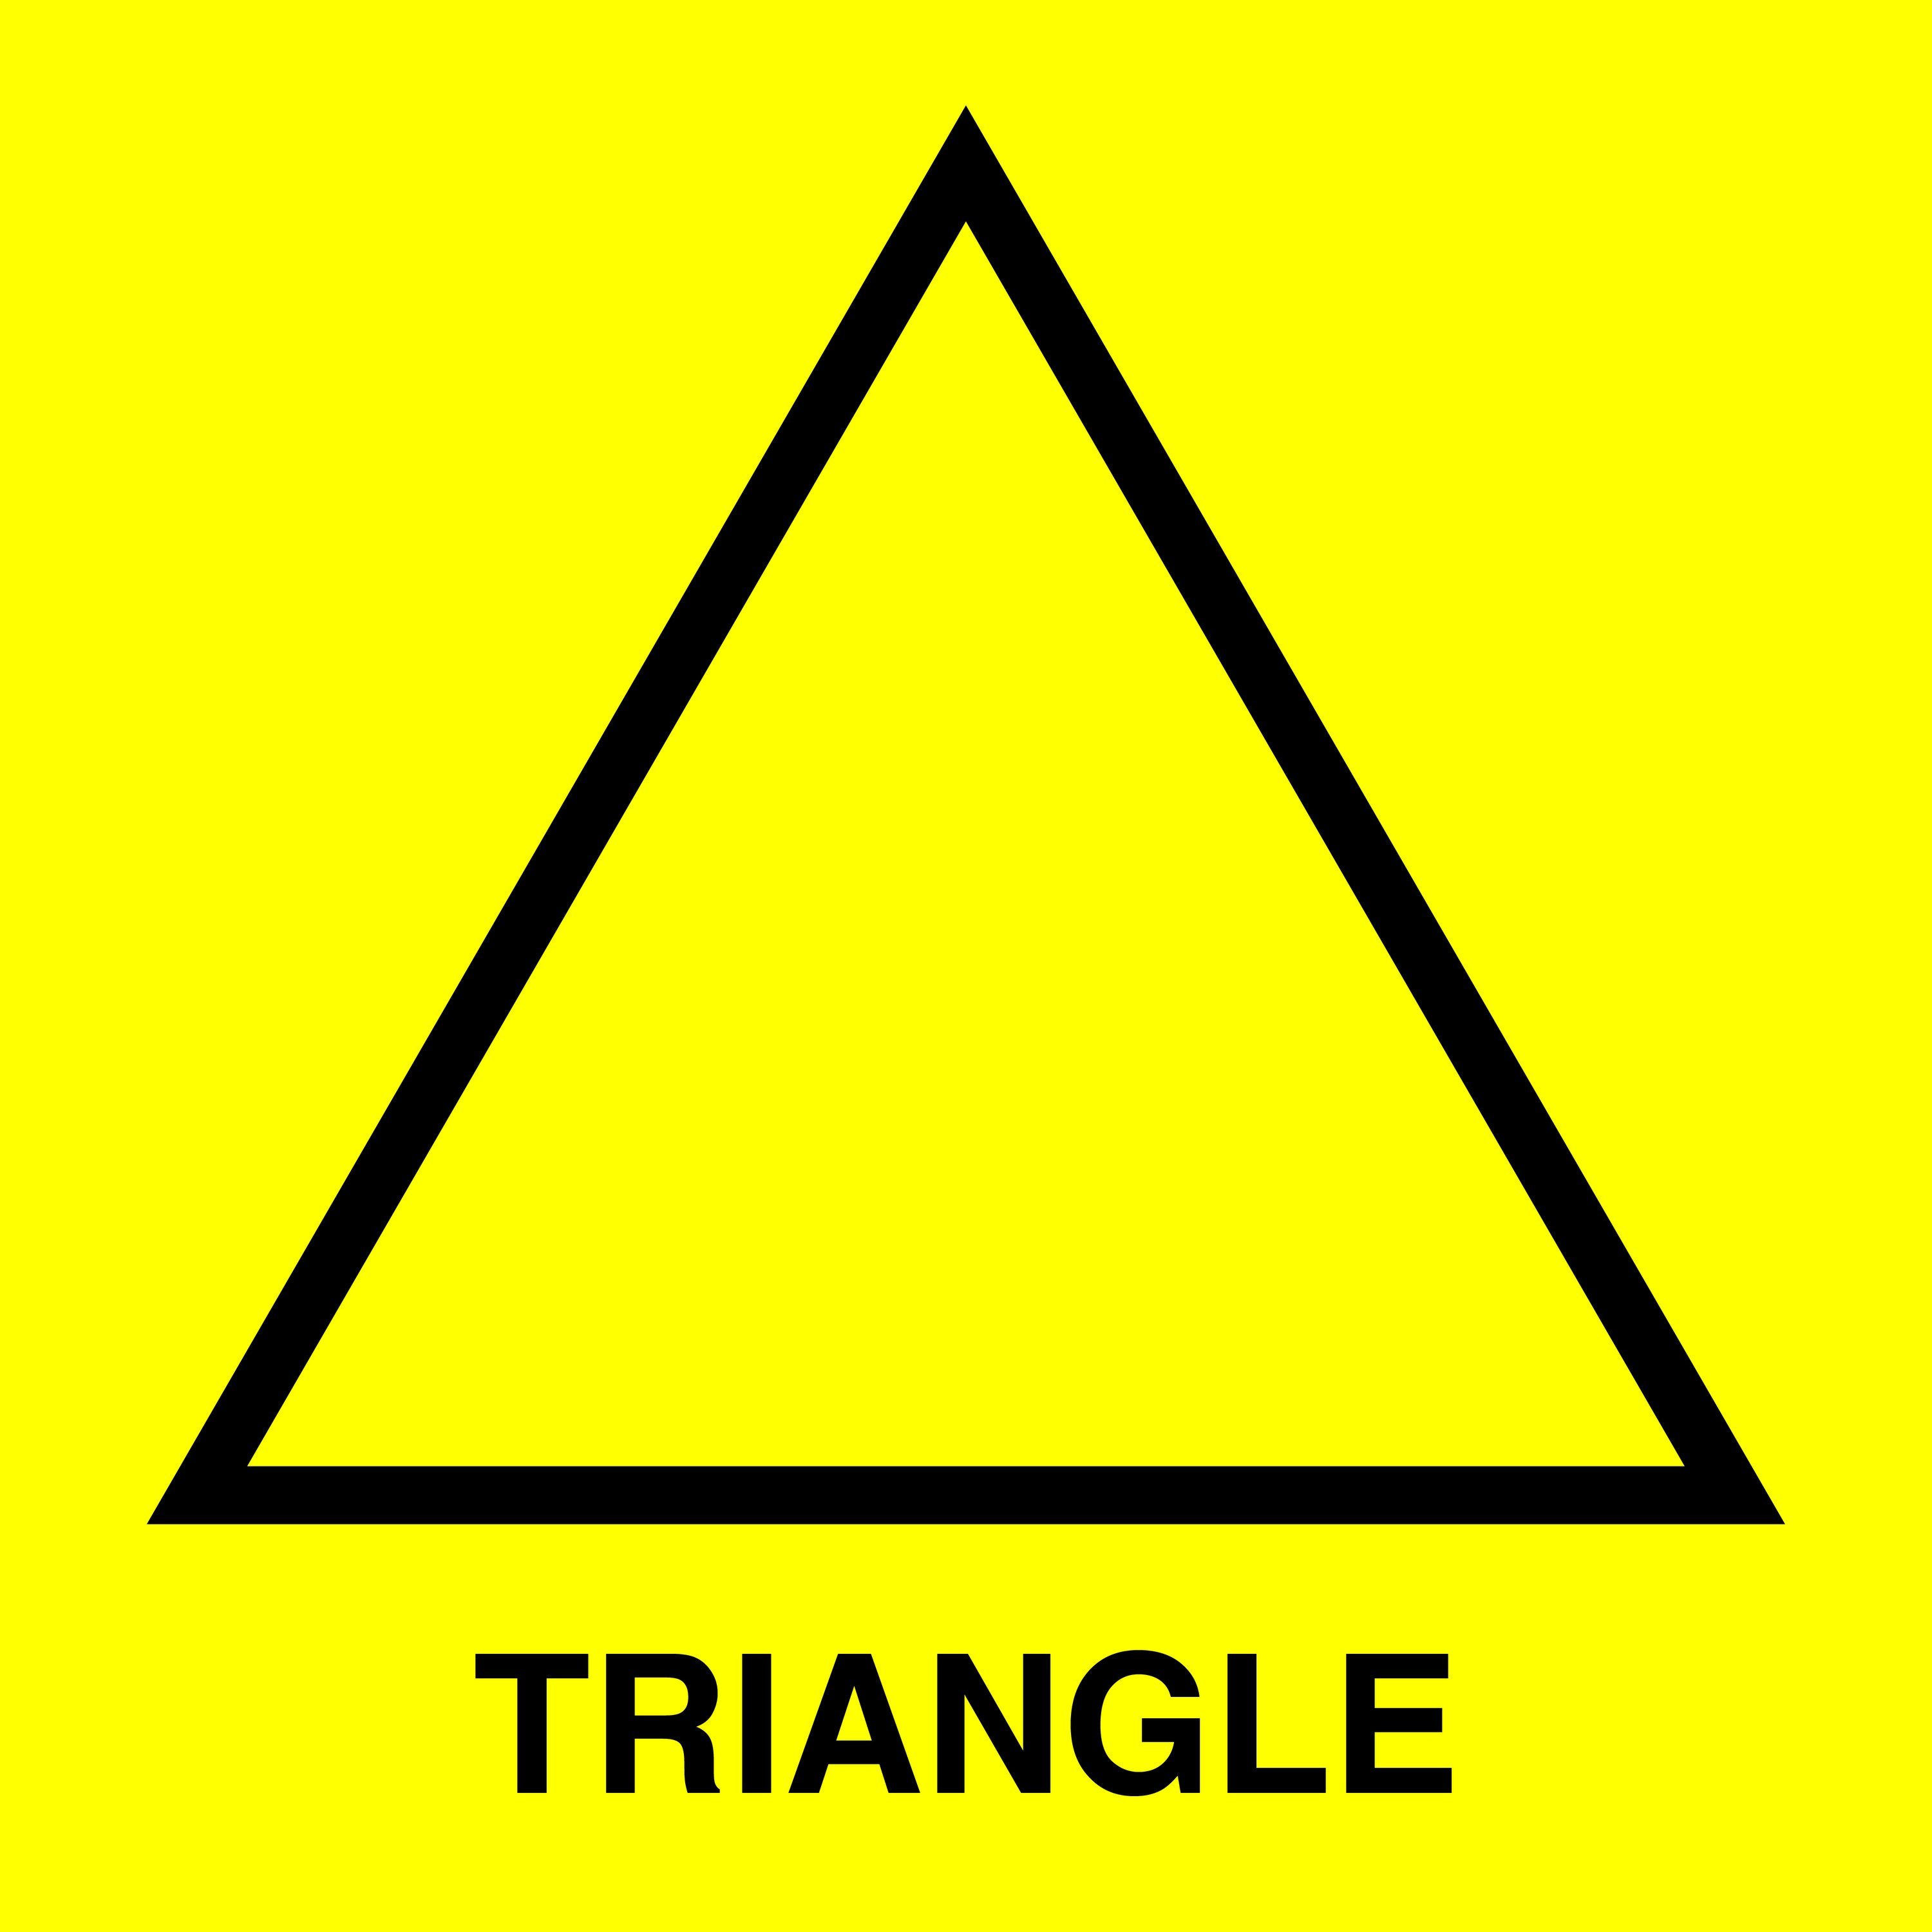 Triangle Shapes For Kids